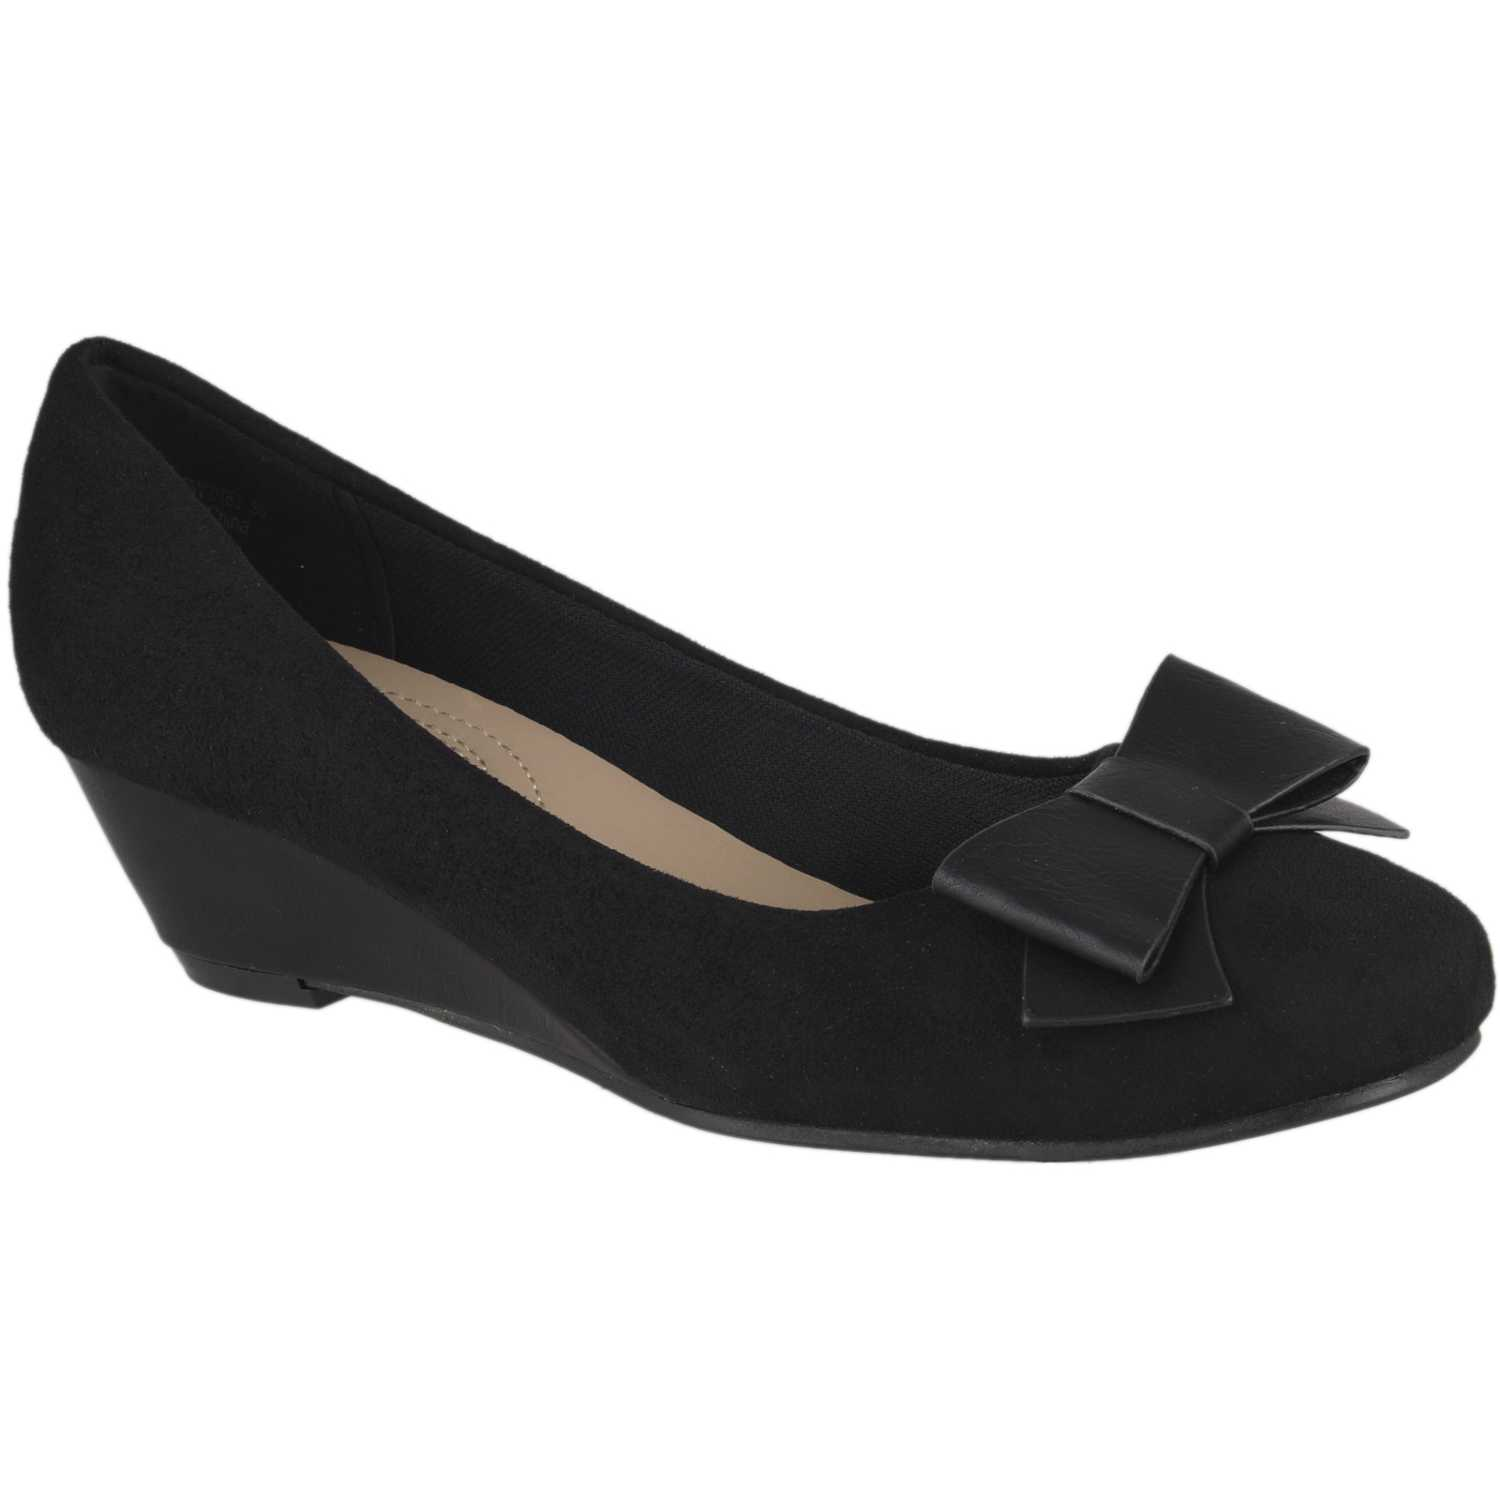 Platanitos CW-0753 Negro Estiletos y Pumps